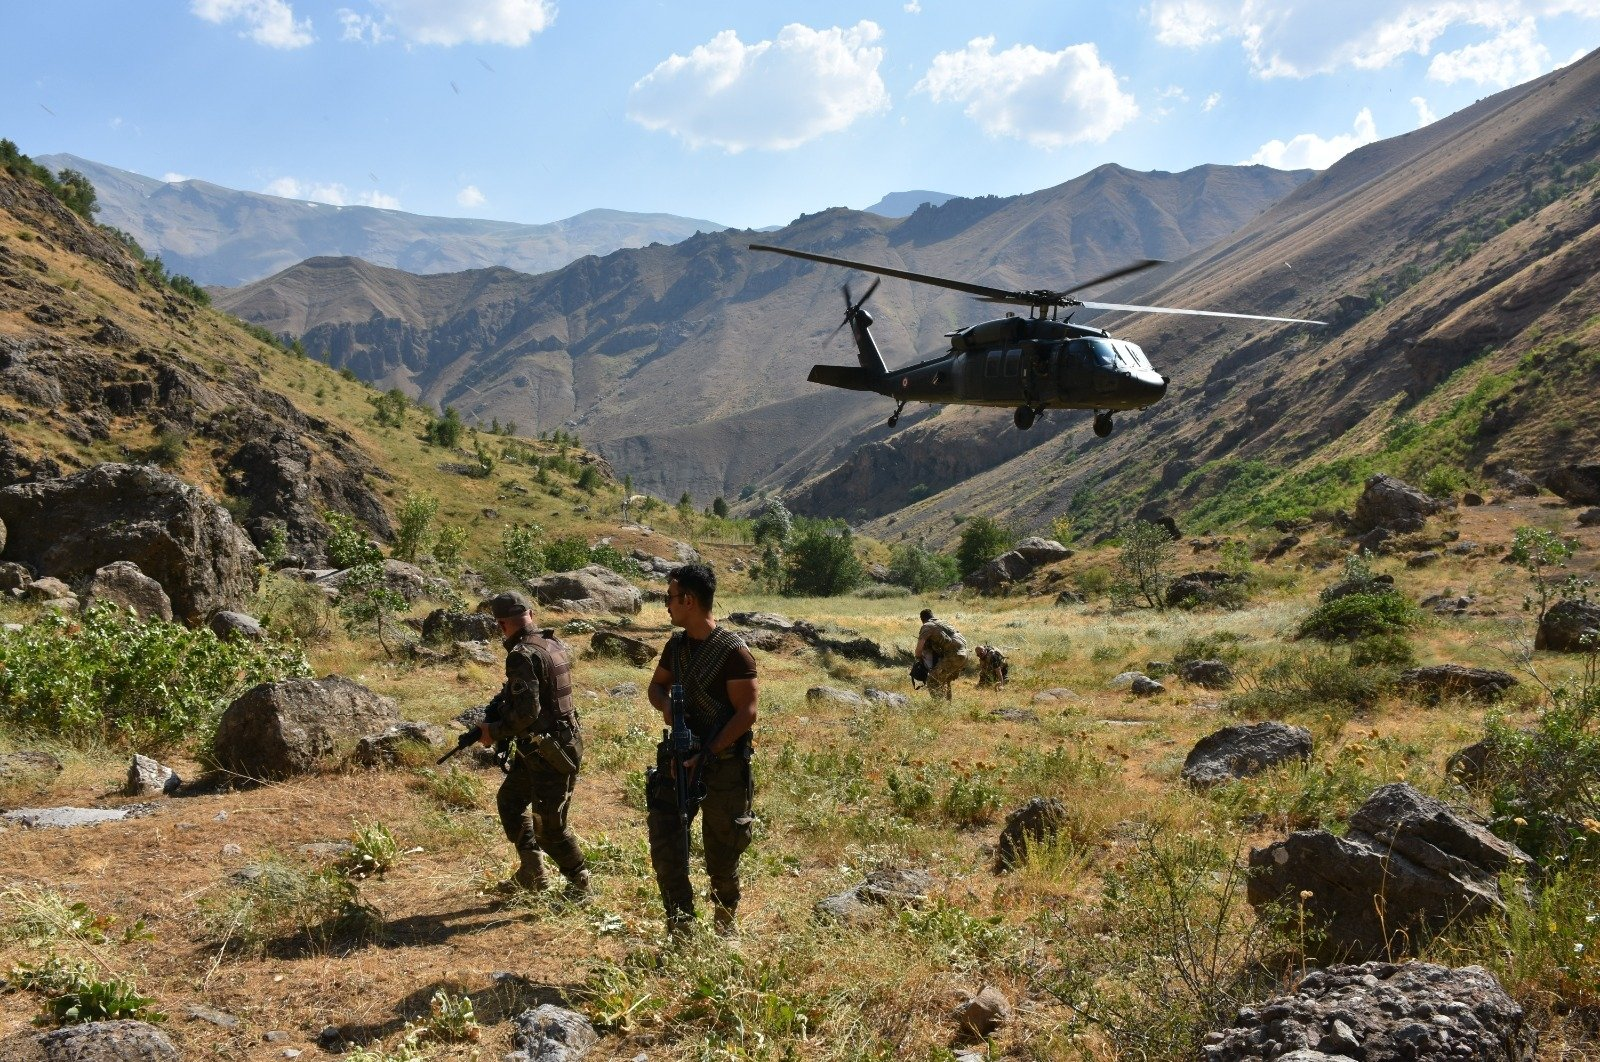 Turkish security forces participate in a counterterrorism operation in southeastern Turkey's Şırnak province (AA File Photo)